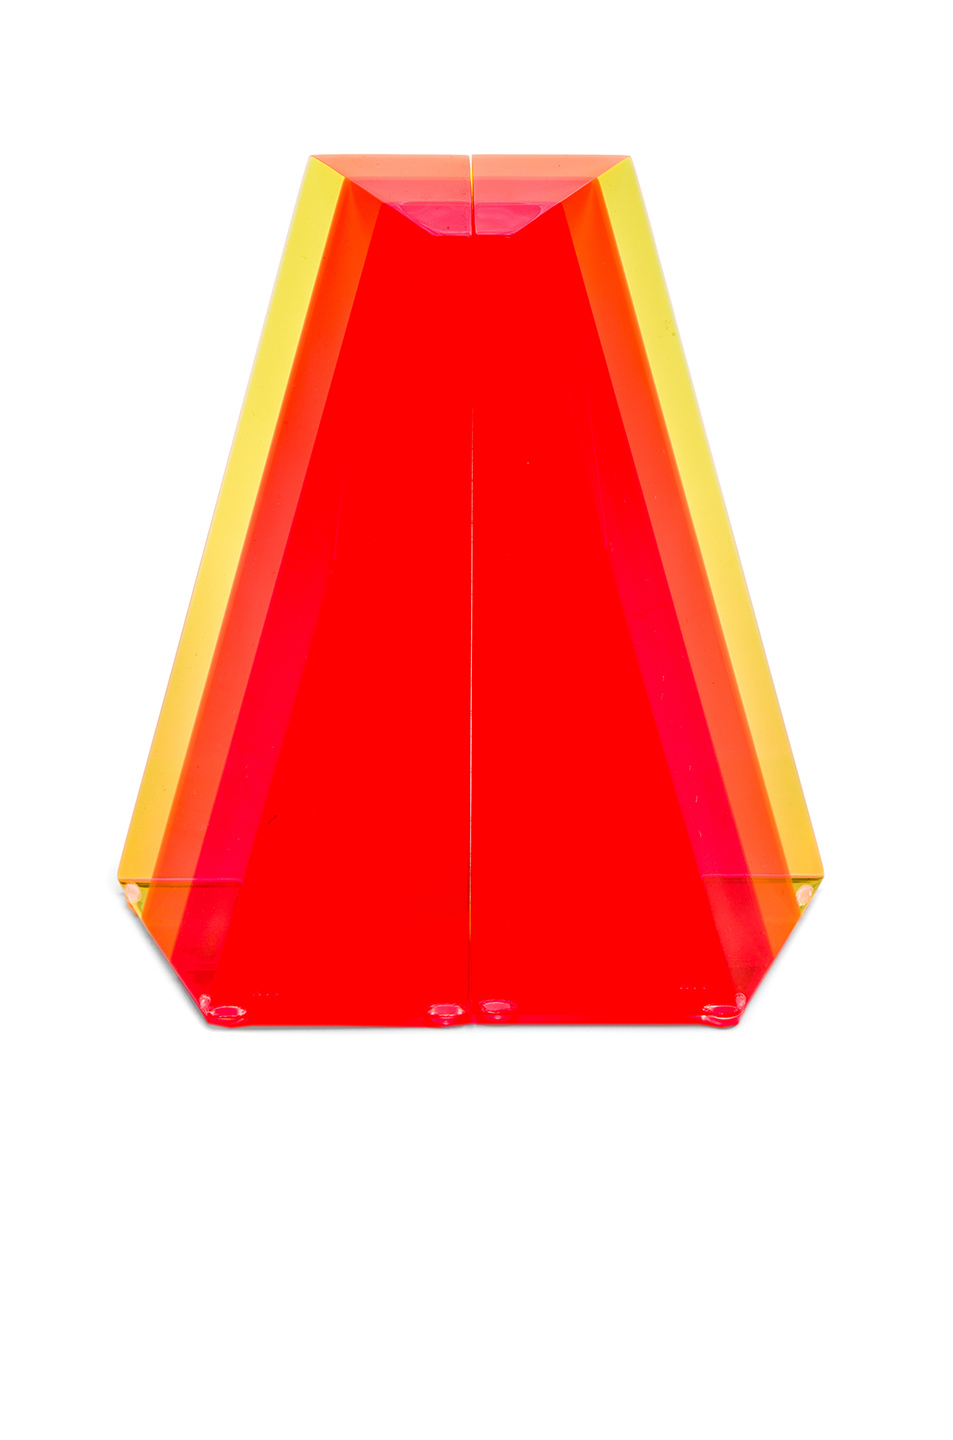 Alexandra Von Furstenberg Fearless Prism Bookends in Red,Neon,Stripes